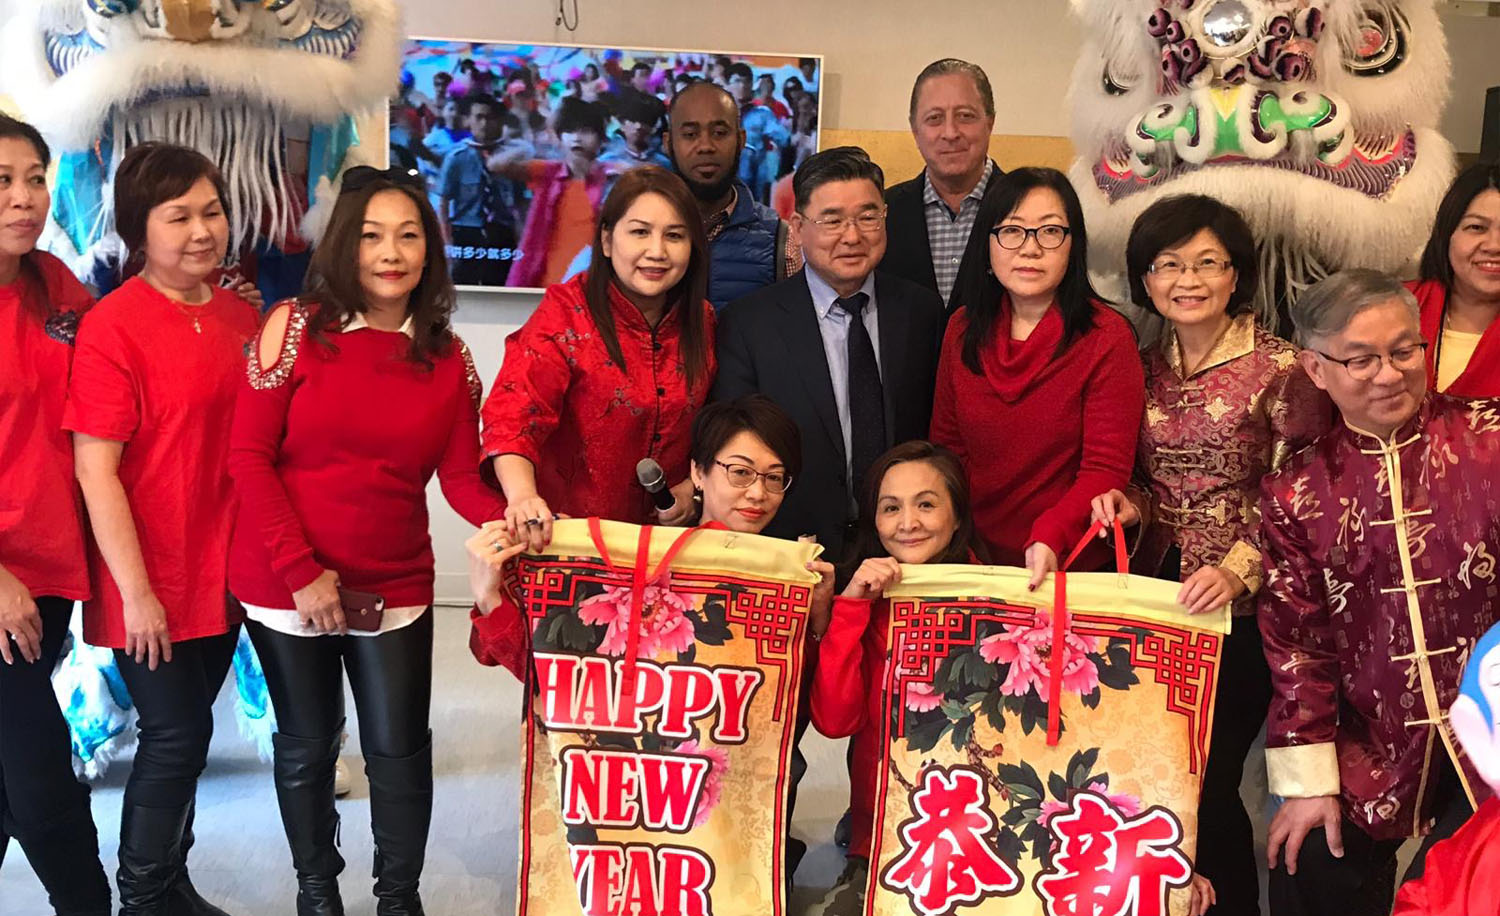 Part of the group of 45-50 entertainers celebrating Chinese New Year's at LICC